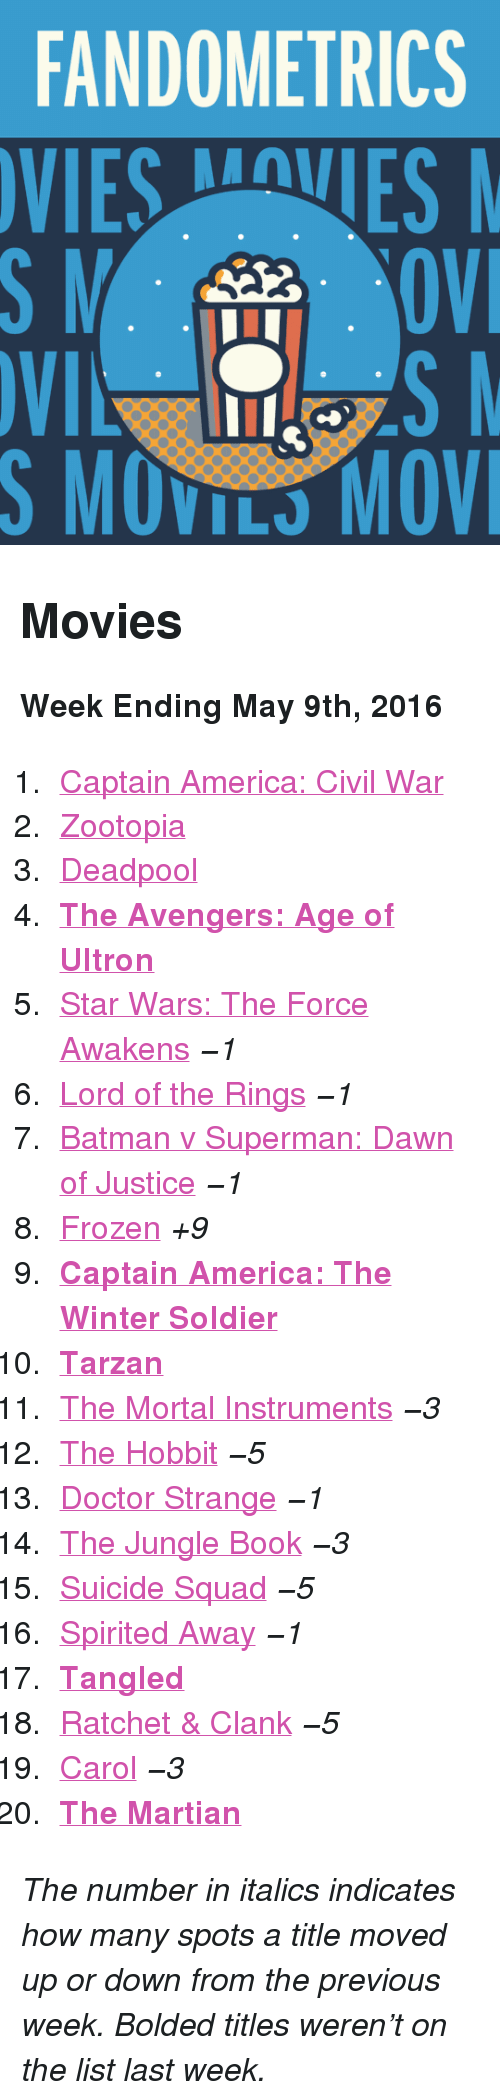 """Avengers: FANDOMETRICS  VIESVES  S MOVILS MOV <h2>Movies</h2><p><b>Week Ending May 9th, 2016</b></p><ol><li><a href=""""http://www.tumblr.com/search/captain%20america%20civil%20war"""">Captain America: Civil War</a></li>  <li><a href=""""http://www.tumblr.com/search/zootopia"""">Zootopia</a></li>  <li><a href=""""http://www.tumblr.com/search/deadpool"""">Deadpool</a></li>  <li><a href=""""http://www.tumblr.com/search/age%20of%20ultron""""><b>The Avengers: Age of Ultron</b></a></li>  <li><a href=""""http://www.tumblr.com/search/the%20force%20awakens"""">Star Wars: The Force Awakens</a><i>−1</i></li>  <li><a href=""""http://www.tumblr.com/search/lotr"""">Lord of the Rings</a><i>−1</i></li>  <li><a href=""""http://www.tumblr.com/search/batman%20v%20superman"""">Batman v Superman: Dawn of Justice</a><i>−1</i></li>  <li><a href=""""http://www.tumblr.com/search/frozen"""">Frozen</a><i>+9</i></li>  <li><a href=""""http://www.tumblr.com/search/catws""""><b>Captain America: The Winter Soldier</b></a></li>  <li><a href=""""http://www.tumblr.com/search/tarzan""""><b>Tarzan</b></a></li>  <li><a href=""""http://www.tumblr.com/search/the%20mortal%20instruments"""">The Mortal Instruments</a><i>−3</i></li>  <li><a href=""""http://www.tumblr.com/search/the%20hobbit"""">The Hobbit</a><i>−5</i></li>  <li><a href=""""http://www.tumblr.com/search/doctor%20strange"""">Doctor Strange</a><i>−1</i></li>  <li><a href=""""http://www.tumblr.com/search/the%20jungle%20book"""">The Jungle Book</a><i>−3</i></li>  <li><a href=""""http://www.tumblr.com/search/suicide%20squad"""">Suicide Squad</a><i>−5</i></li>  <li><a href=""""http://www.tumblr.com/search/spirited%20away"""">Spirited Away</a><i>−1</i></li>  <li><a href=""""http://www.tumblr.com/search/tangled""""><b>Tangled</b></a></li>  <li><a href=""""http://www.tumblr.com/search/ratchet%20and%20clank"""">Ratchet &amp; Clank</a><i>−5</i></li>  <li><a href=""""http://www.tumblr.com/search/carol"""">Carol</a><i>−3</i></li>  <li><a href=""""http://www.tumblr.com/search/the%20martian""""><b>The Martian</b></a></li></ol><p><i>The number in italics indicates how many spo"""